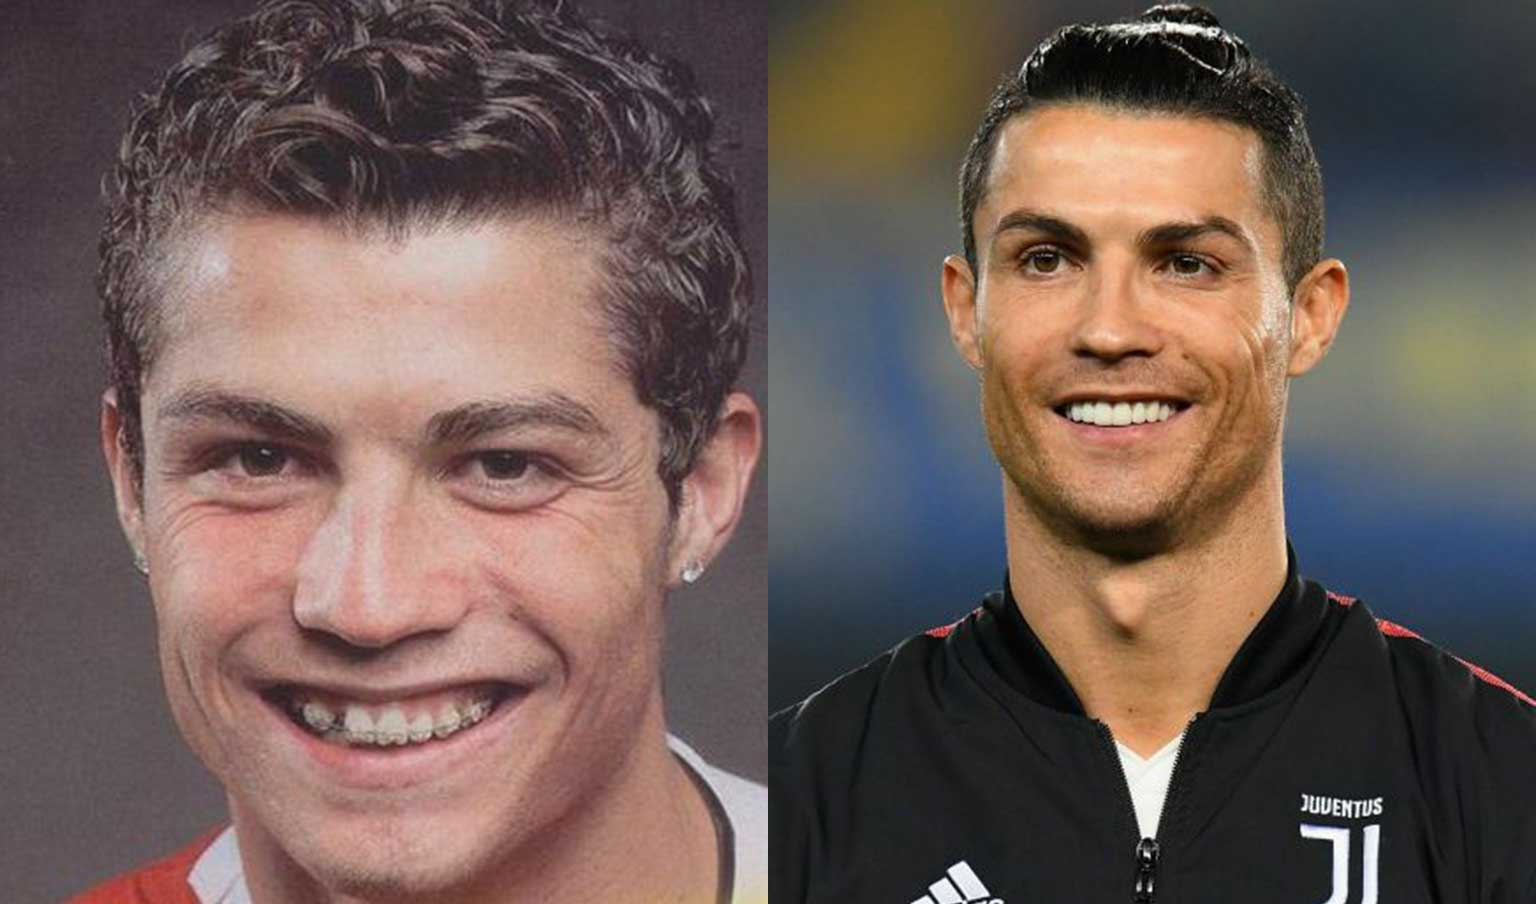 Cristiano Ronaldo during and after treatment with ceramic braces